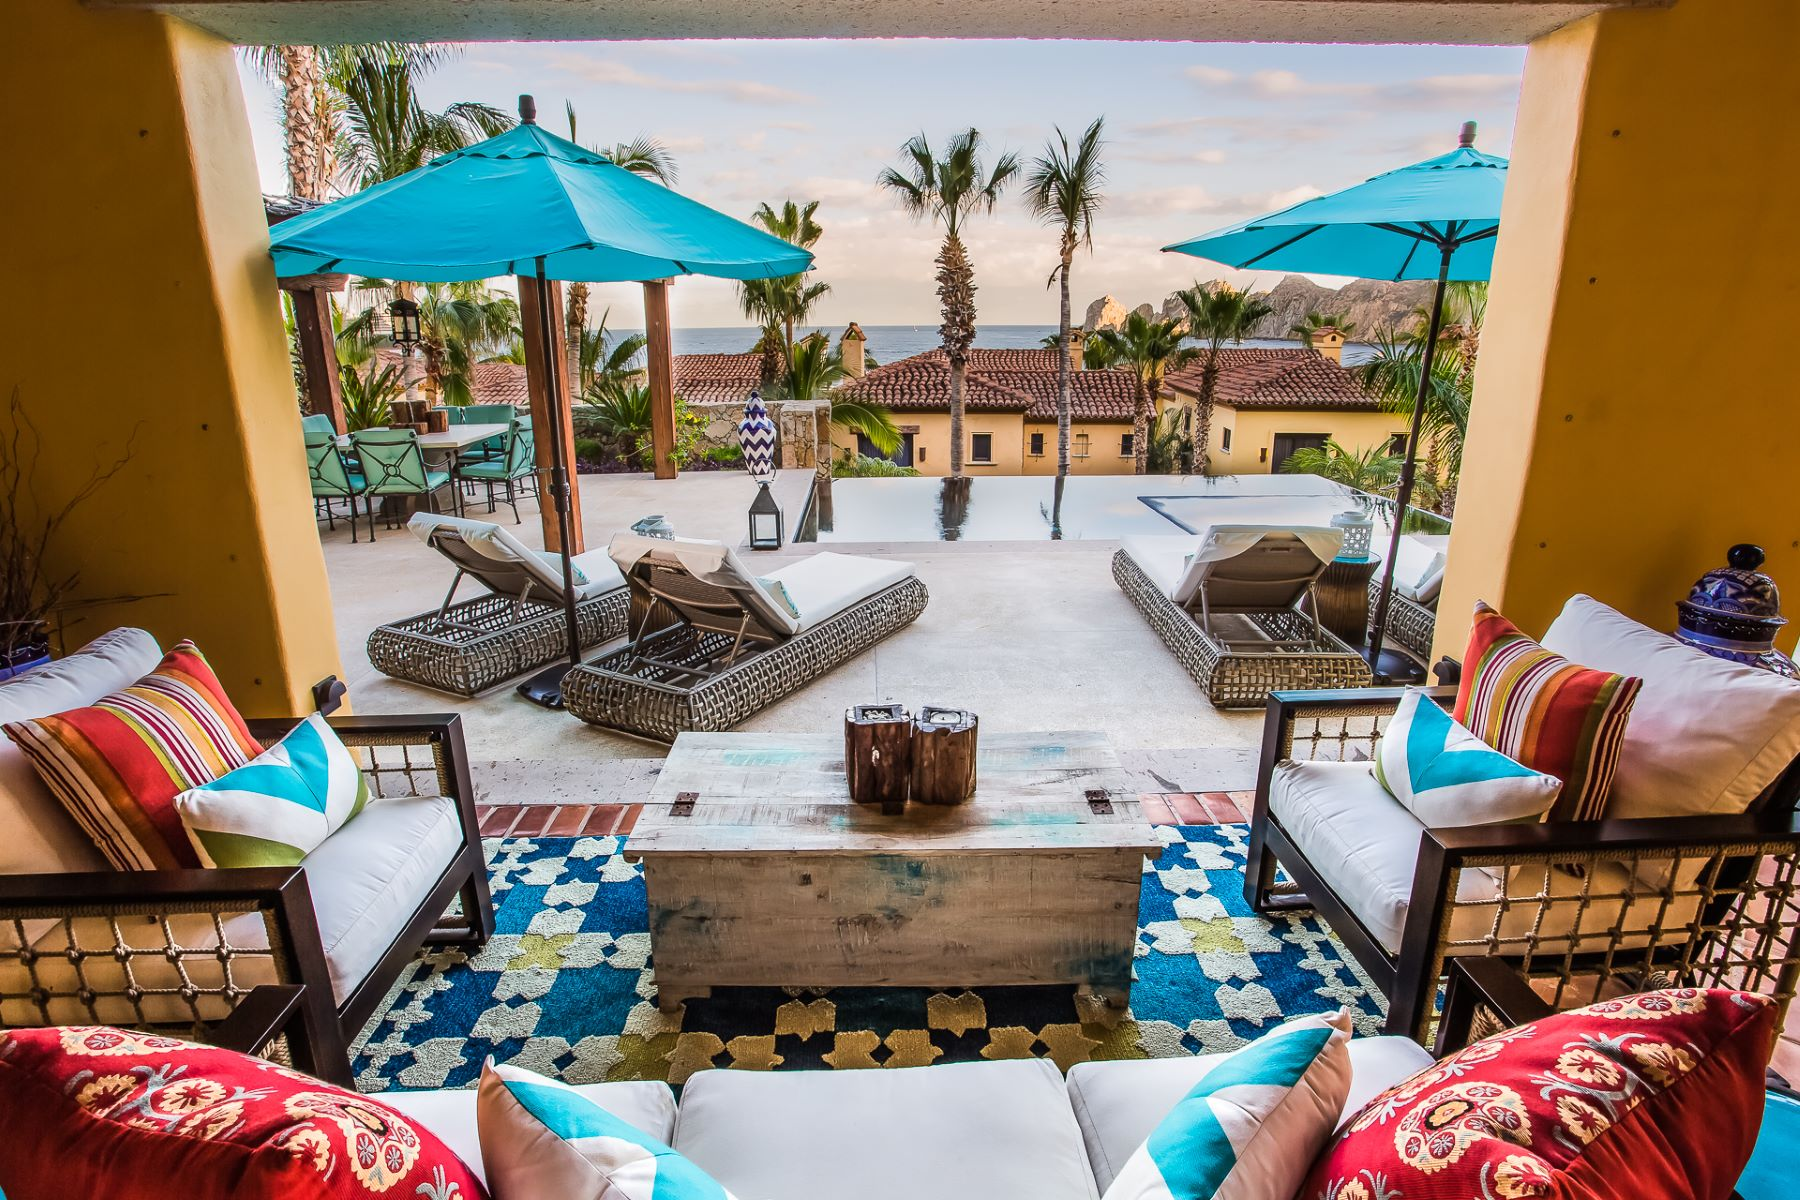 Single Family Home for Sale at Veranda del Aqua Cabo San Lucas, Baja California Sur Mexico